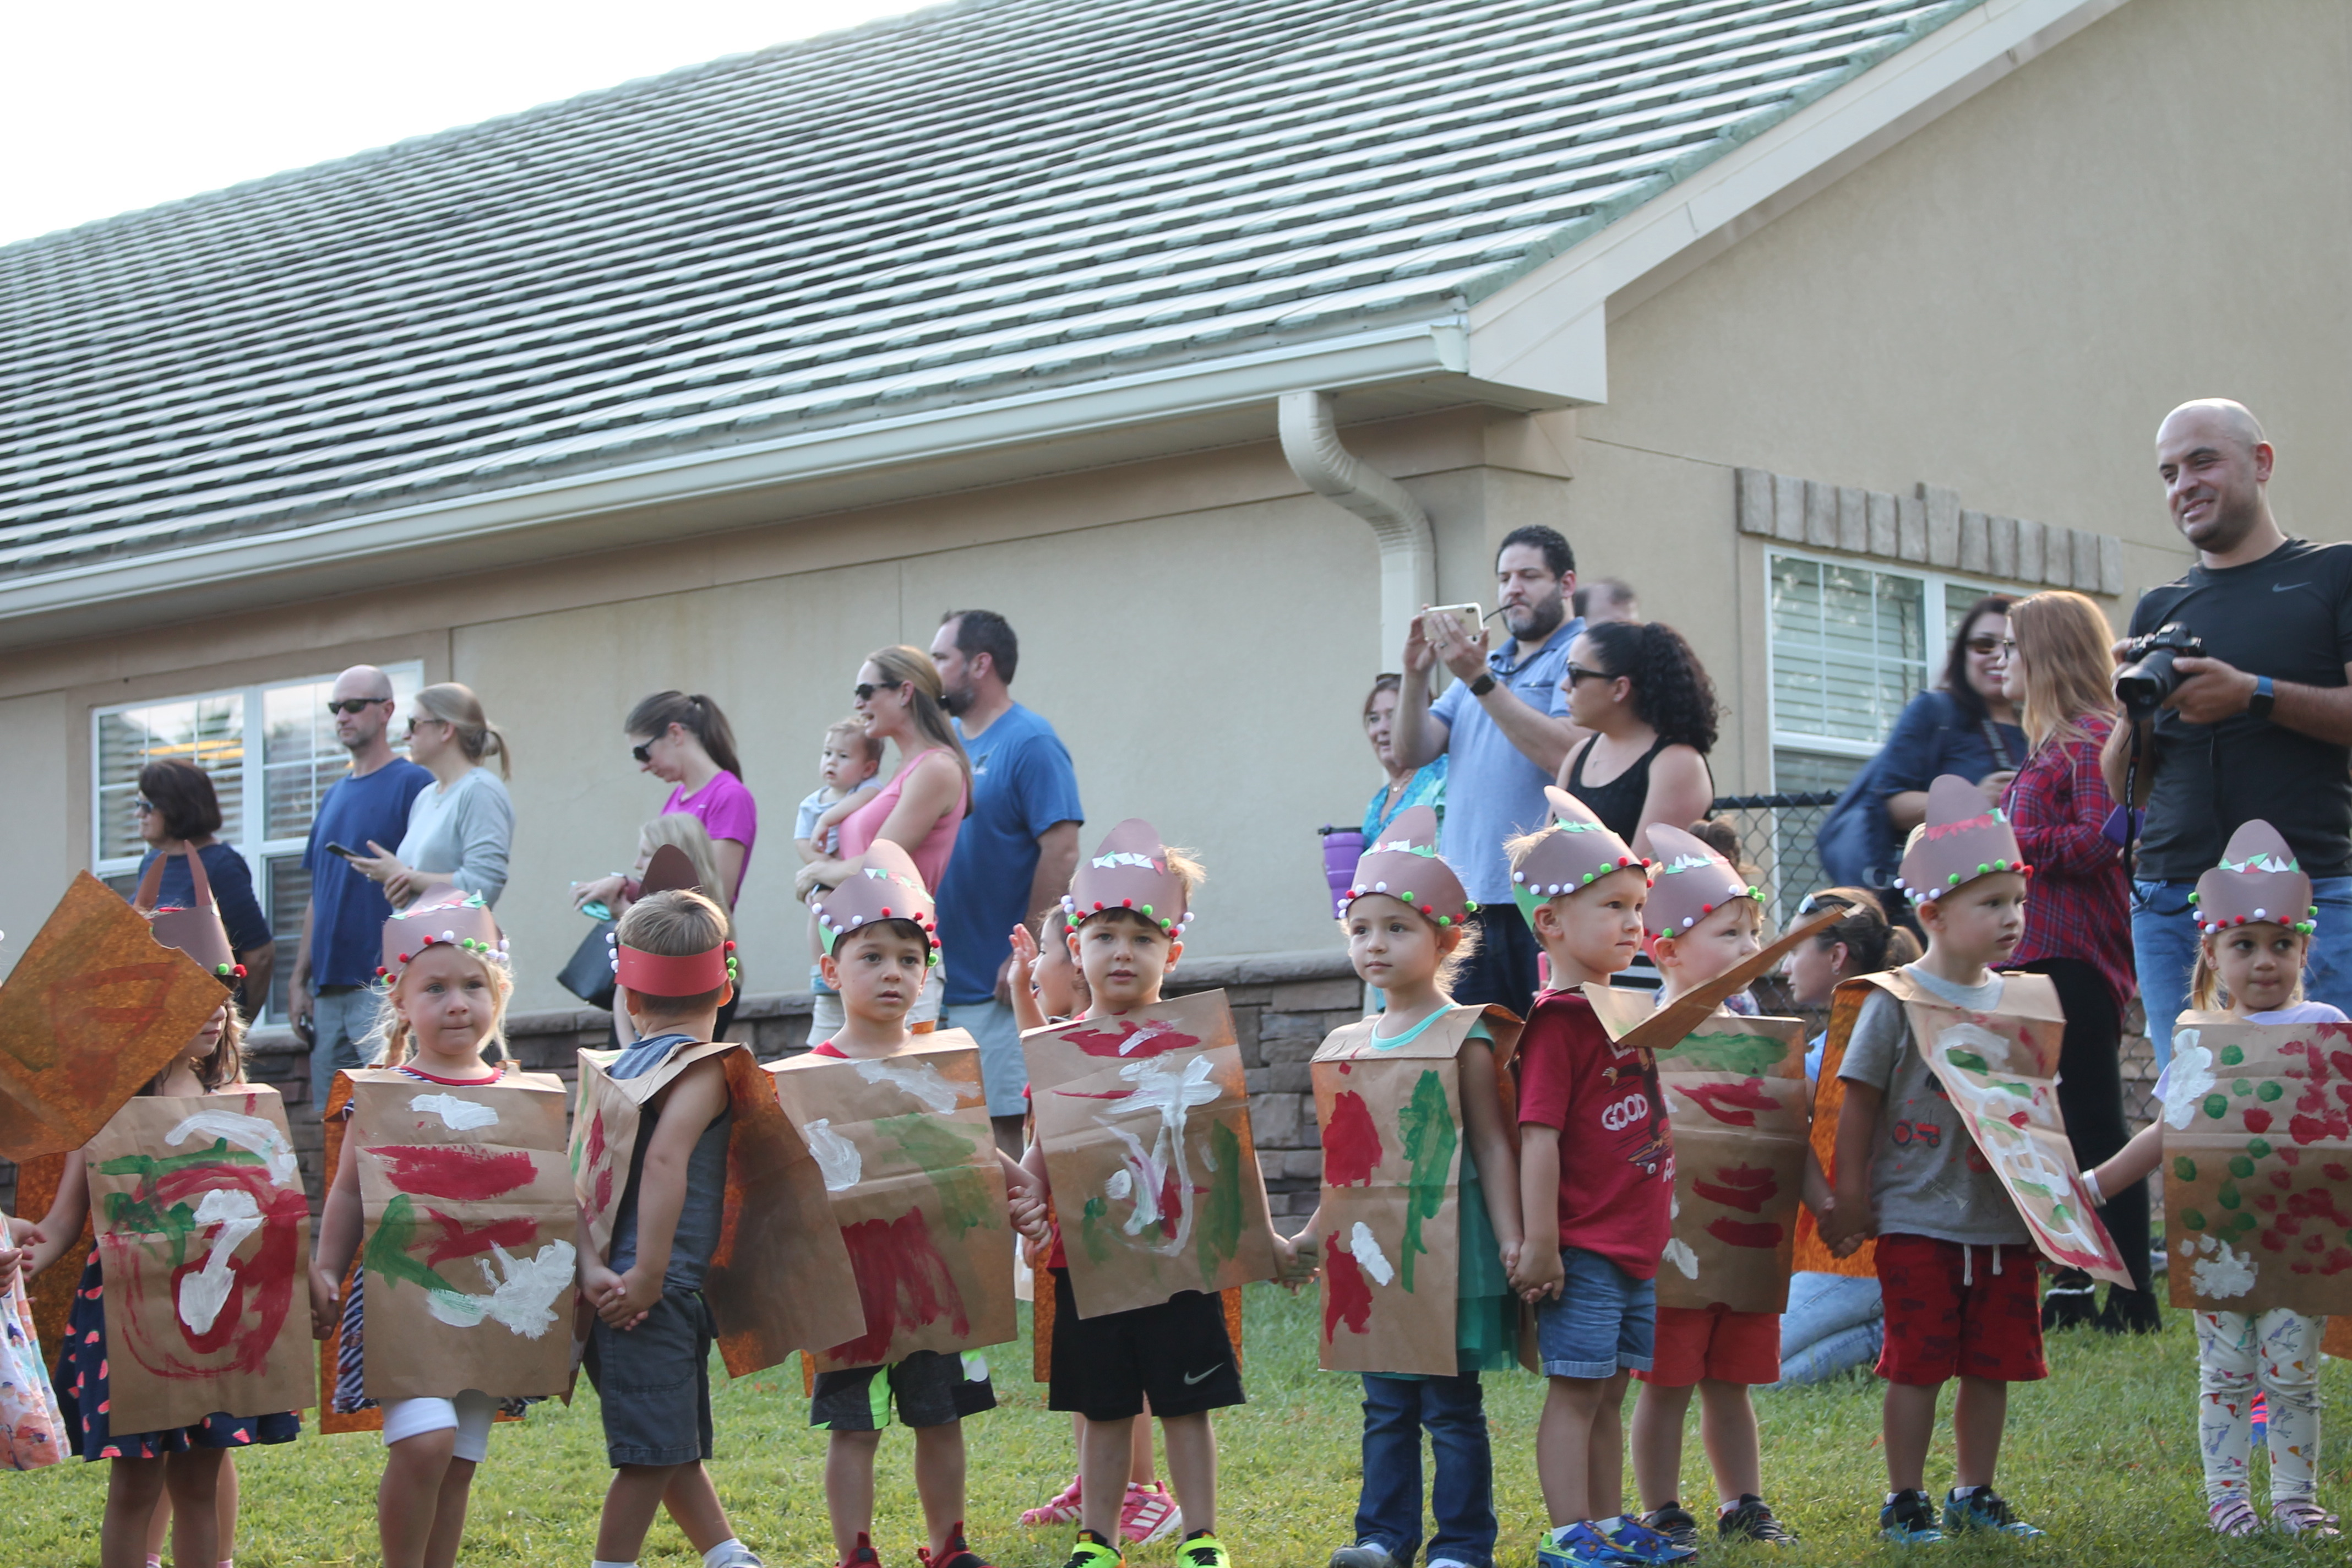 Photo of children dressed in child-created costumes and accessories